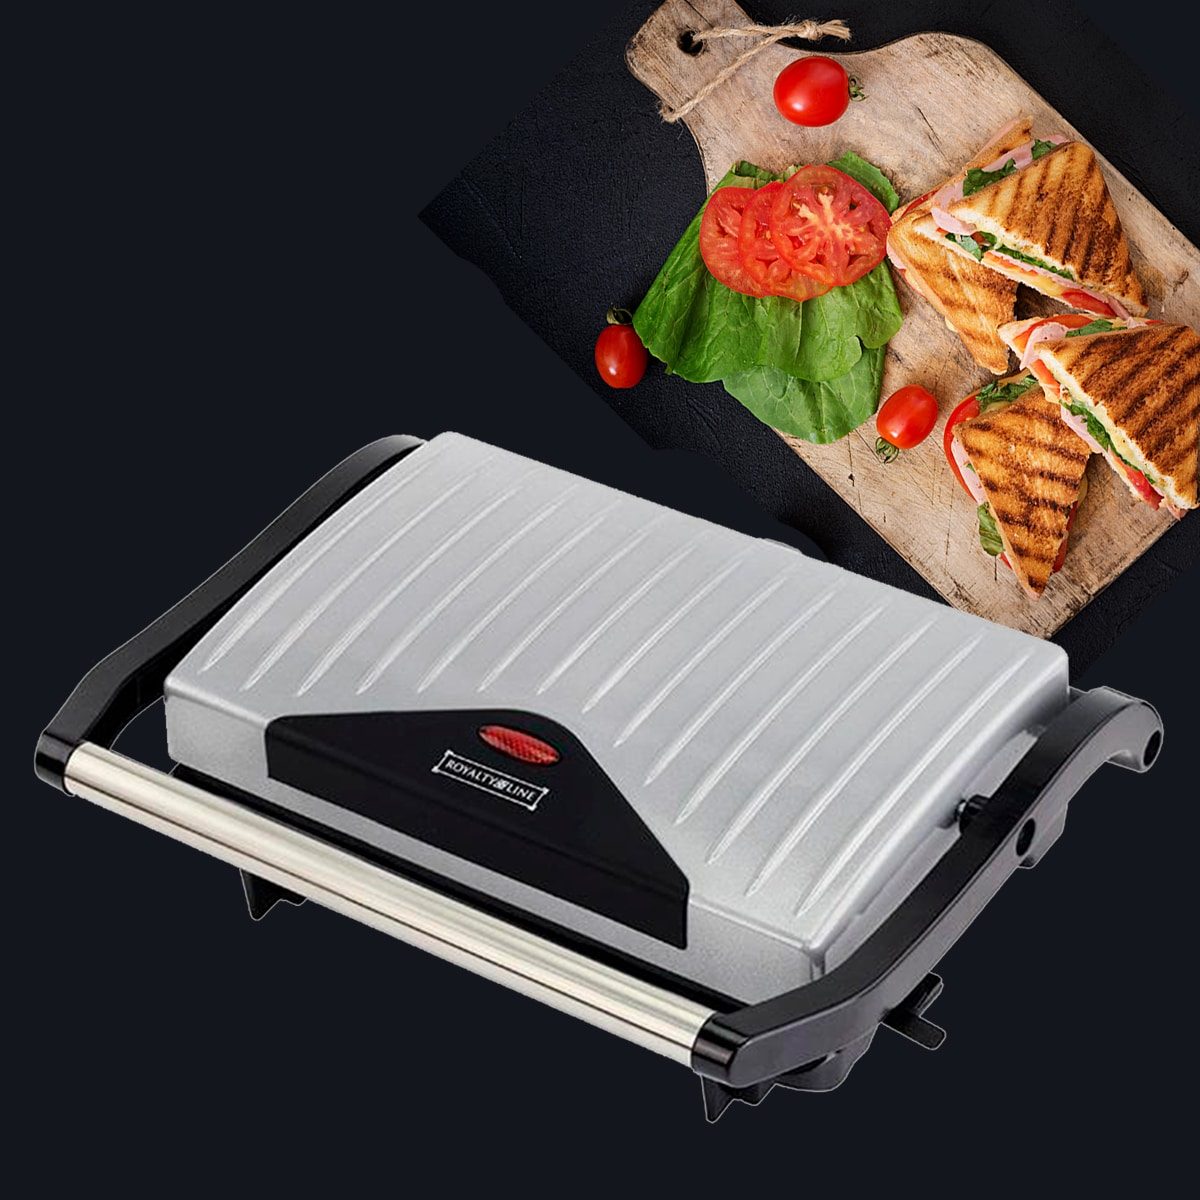 Panini grill/toaster fra Royalty Line